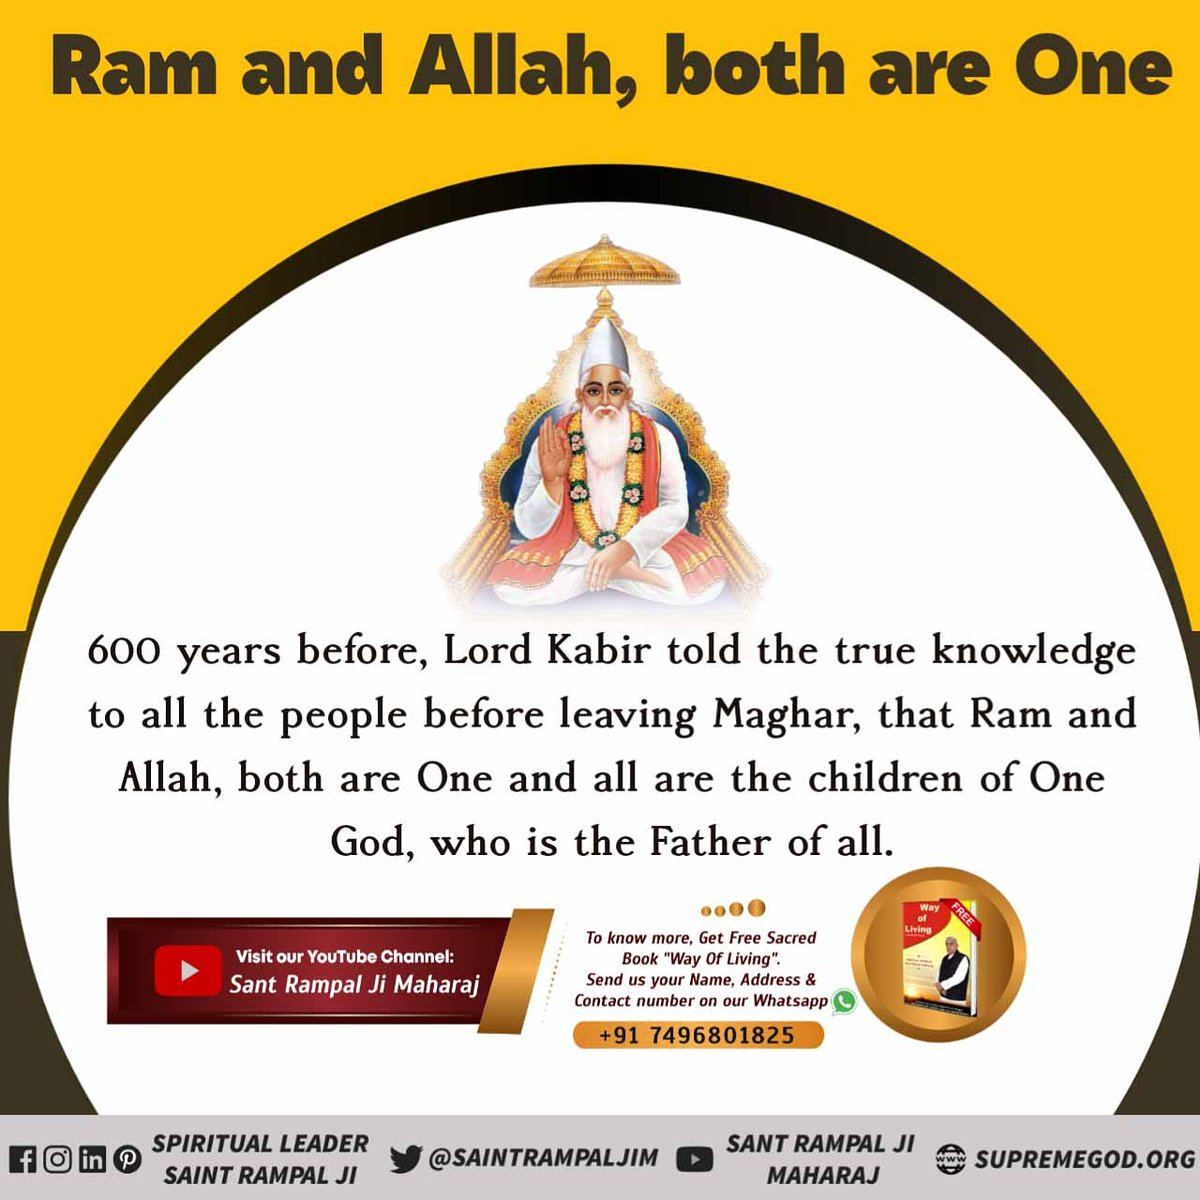 #GodMorningWednesday  Lord Kabir gave us the message  That we are the children of one God .Ram and Allah both are one!.. 🌸